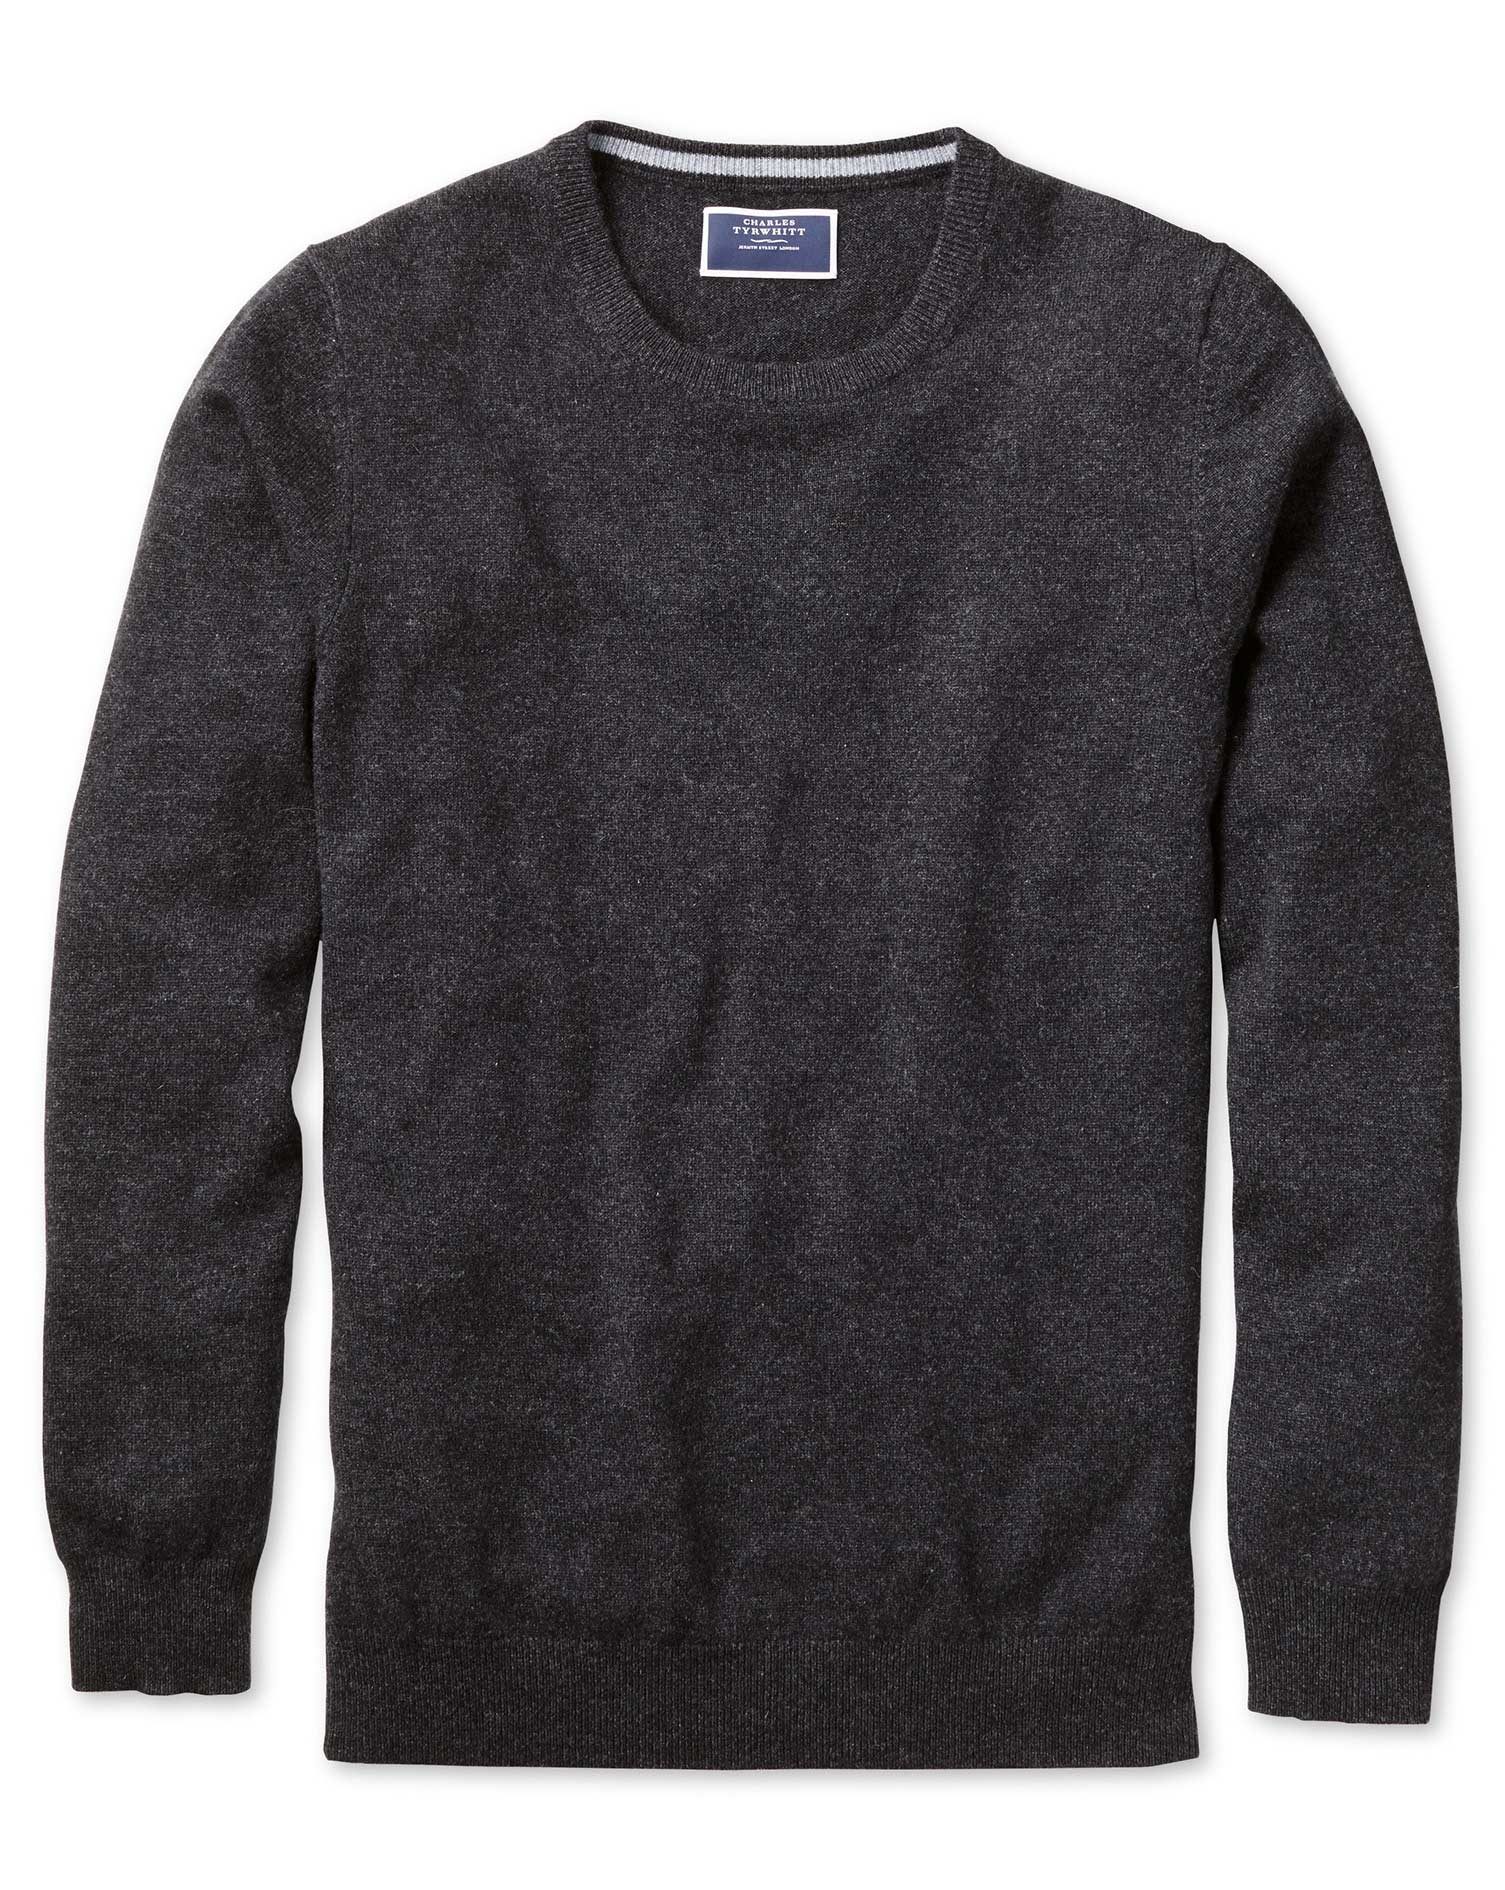 Charcoal Crew Neck Cashmere Jumper Size XL by Charles Tyrwhitt